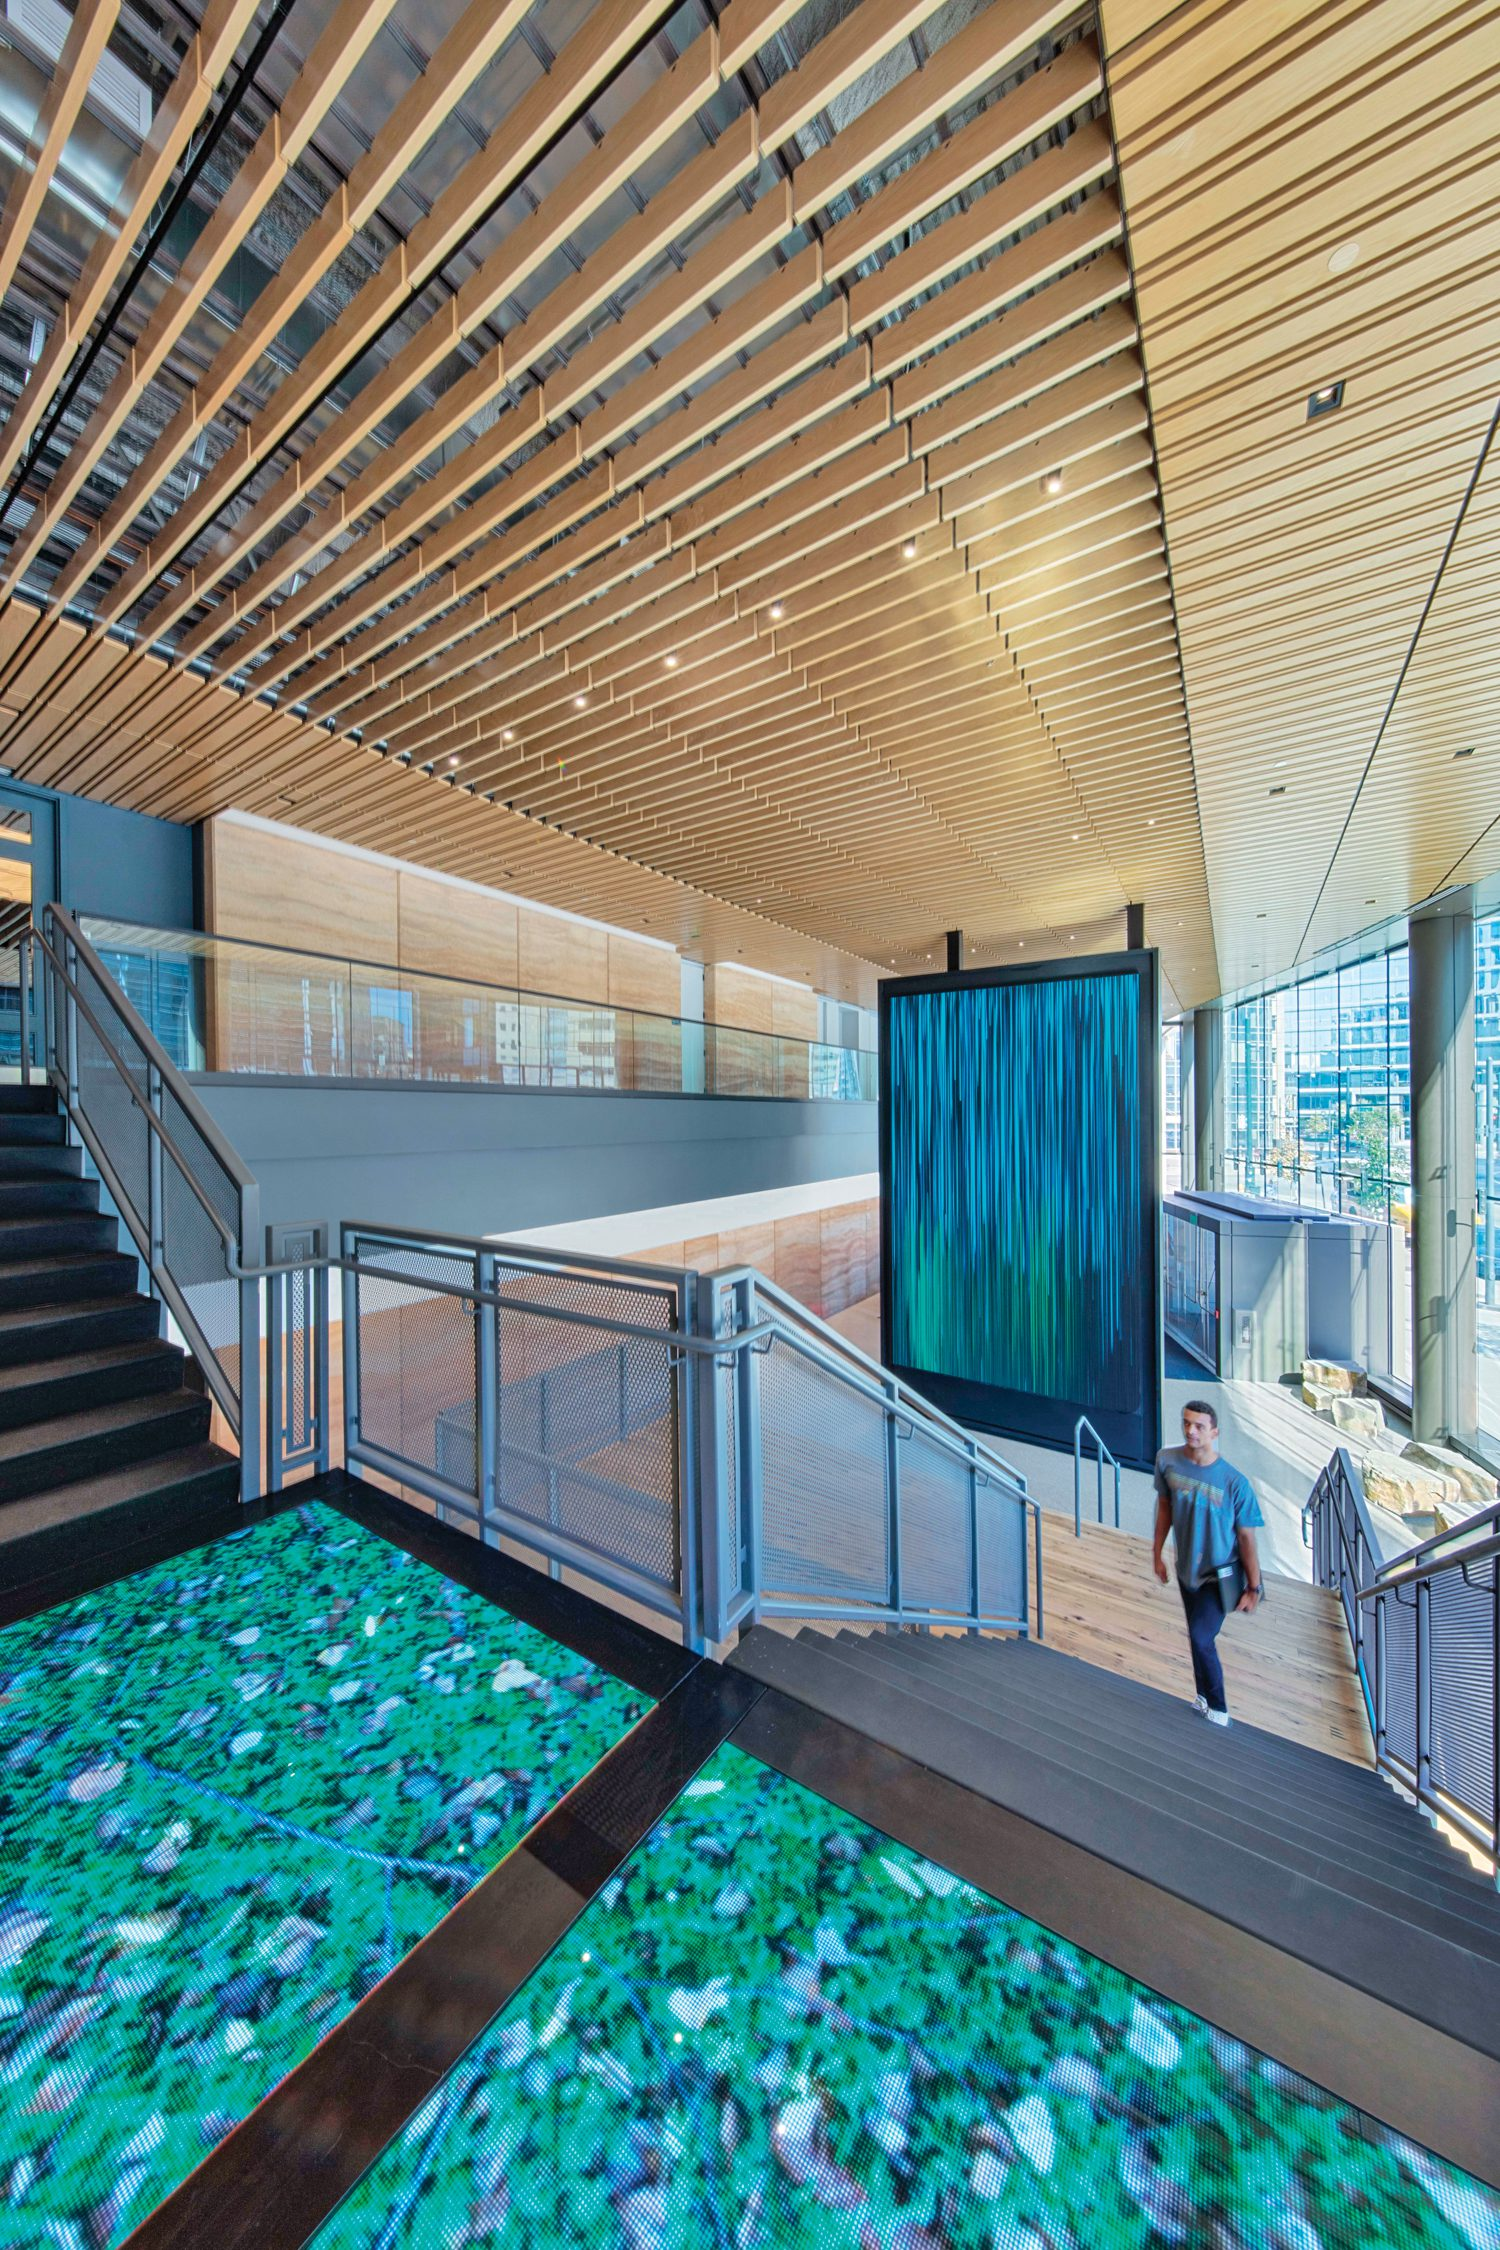 The lobby's 12-by-20-foot LED screen and boulder seating channel VF's focus on technology and the outdoors.